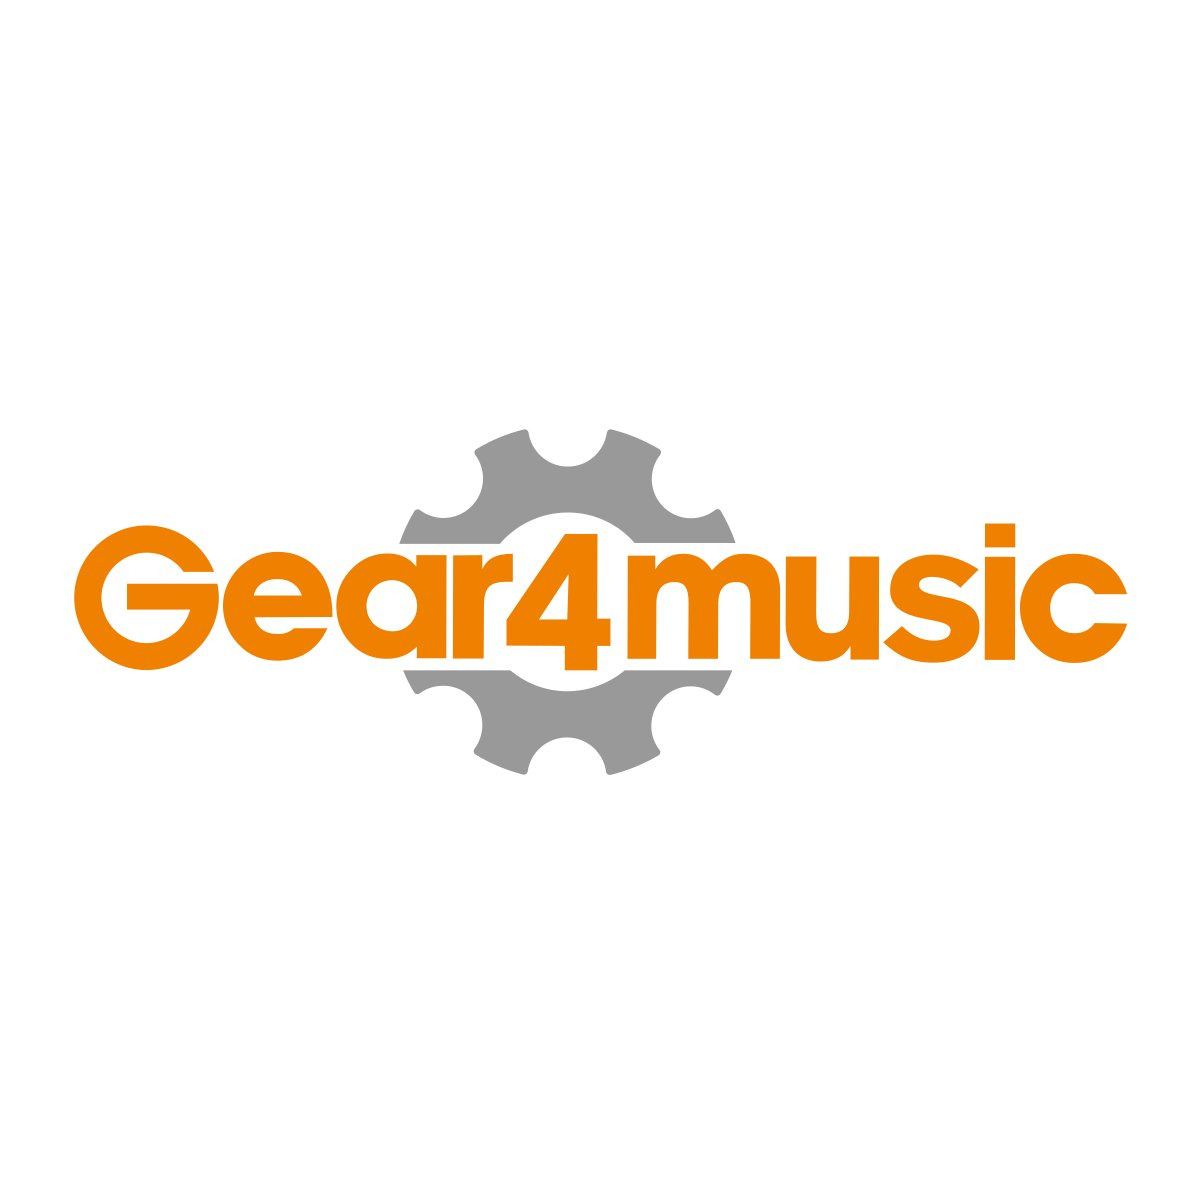 HP-170 Stereo Headphones by Gear4music HP-170 Stereo Headphones by Gear4music